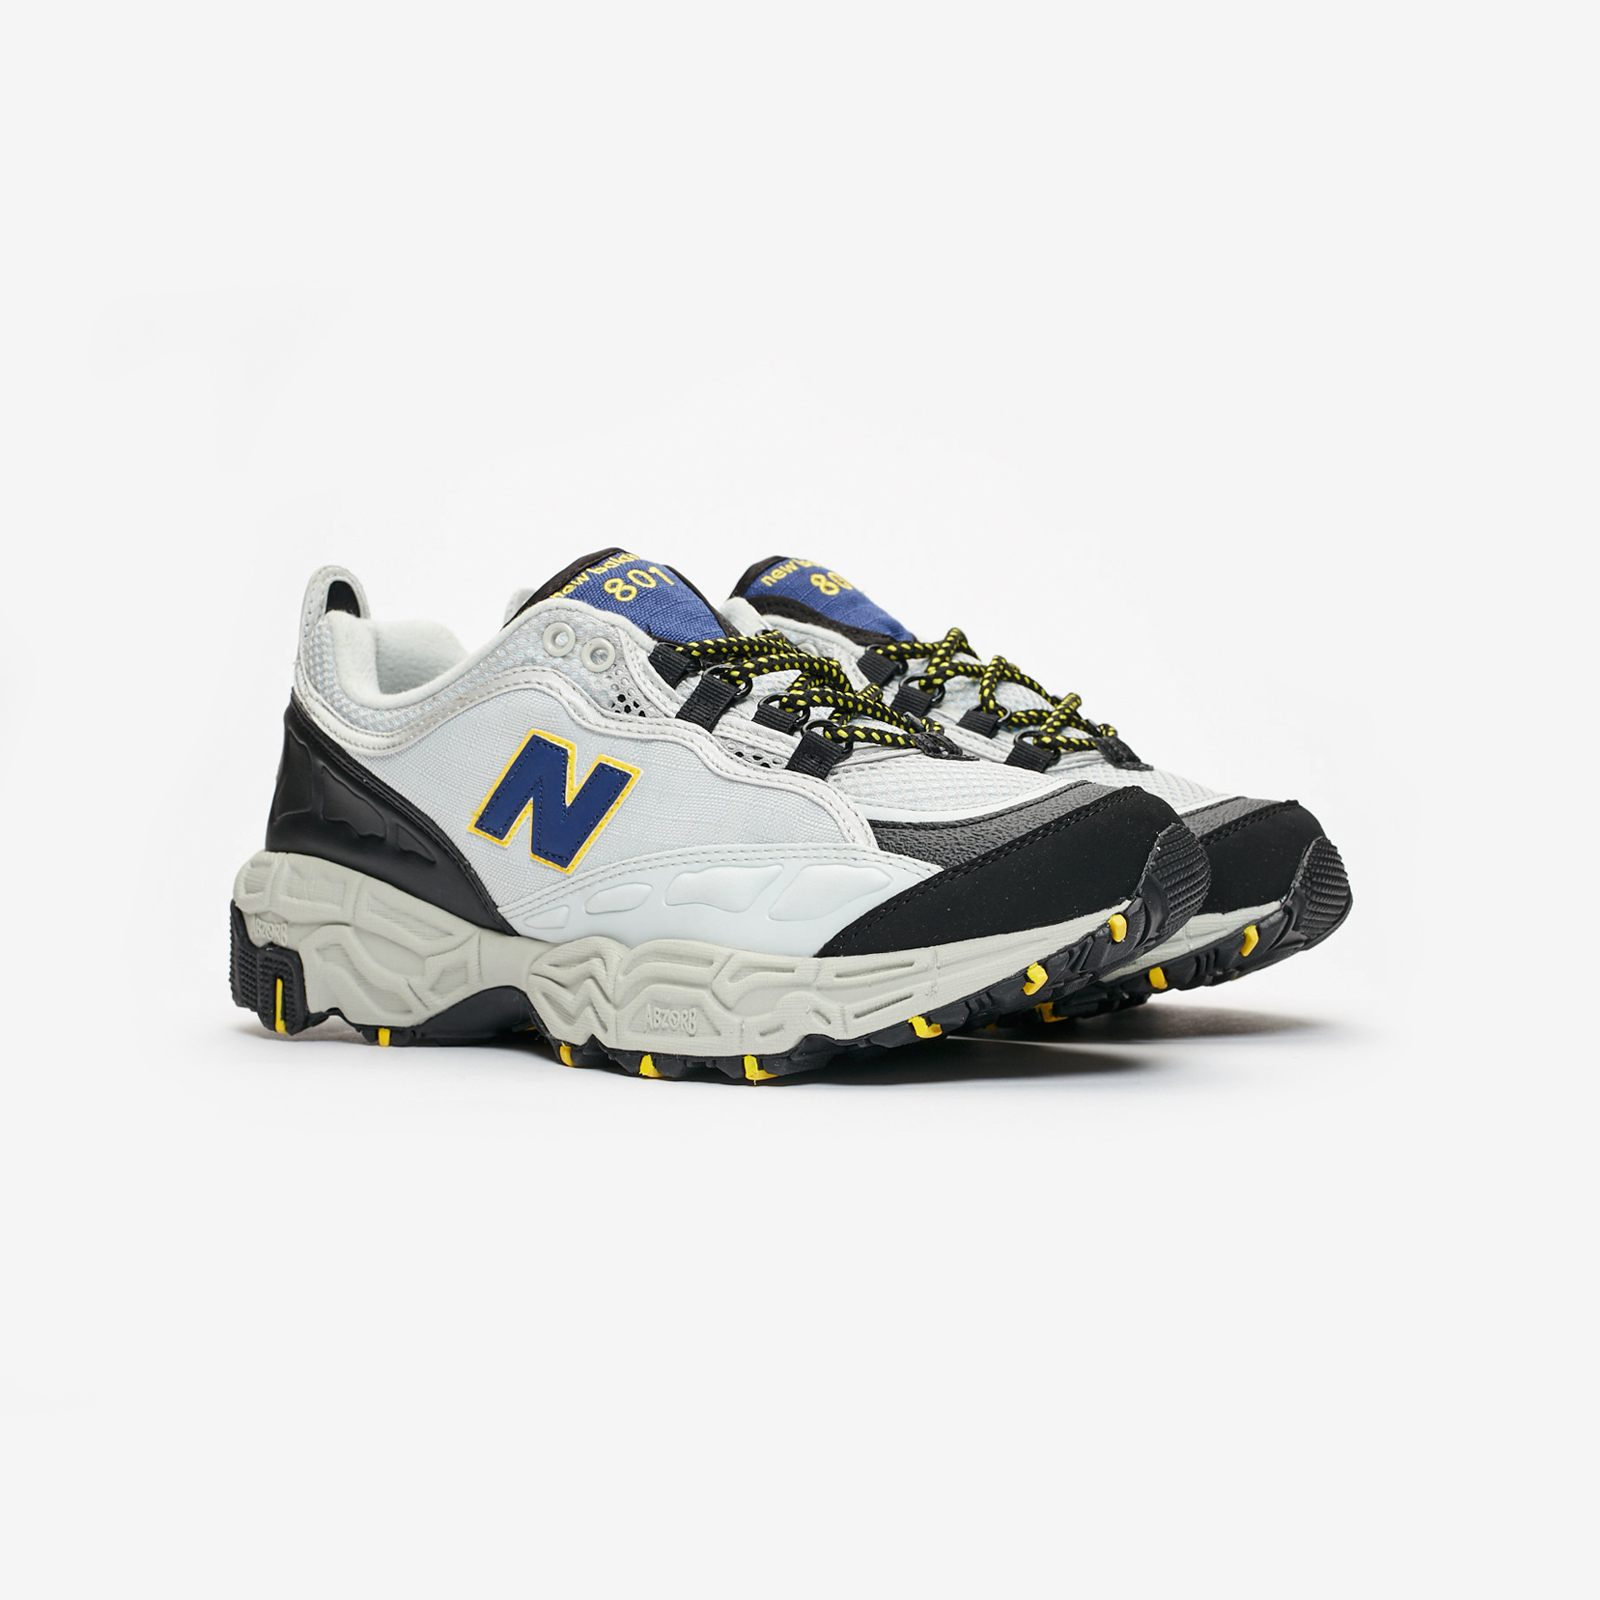 Very Goods | New Balance M801 M801at Sneakersnstuff